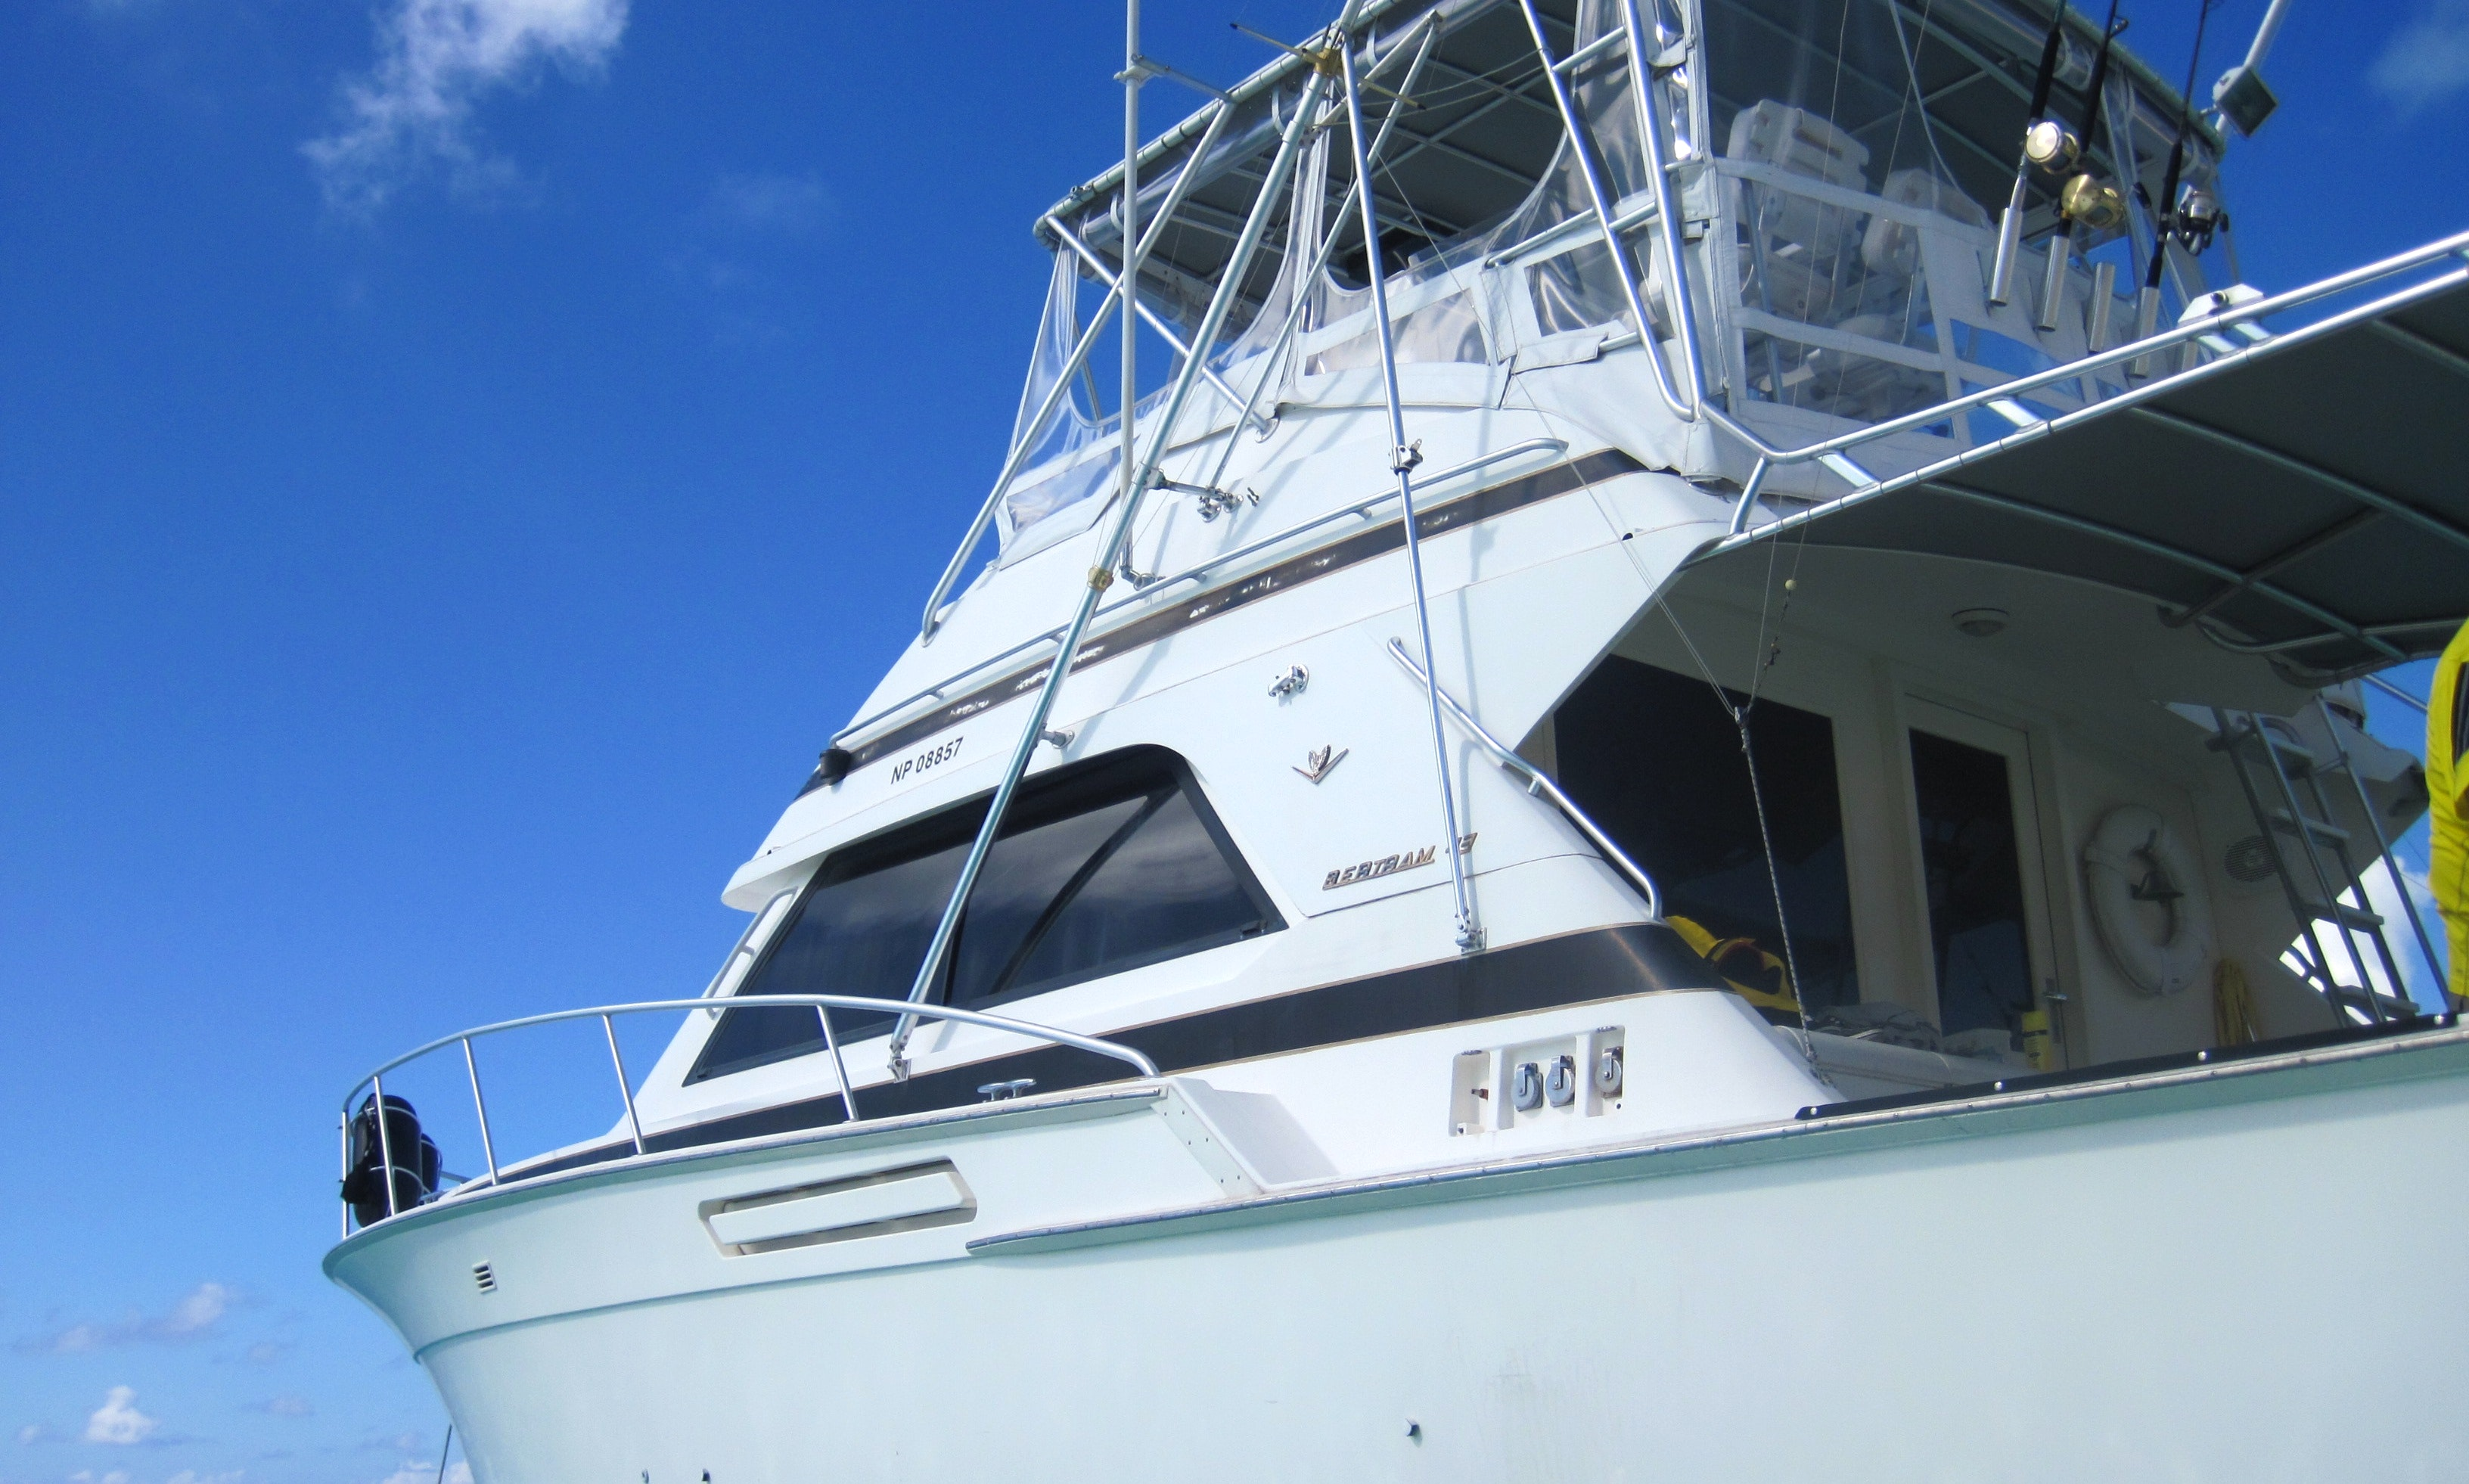 43ft Bertram Leisure/ Snorkel Charter in Nassau New Providence, Bahamas